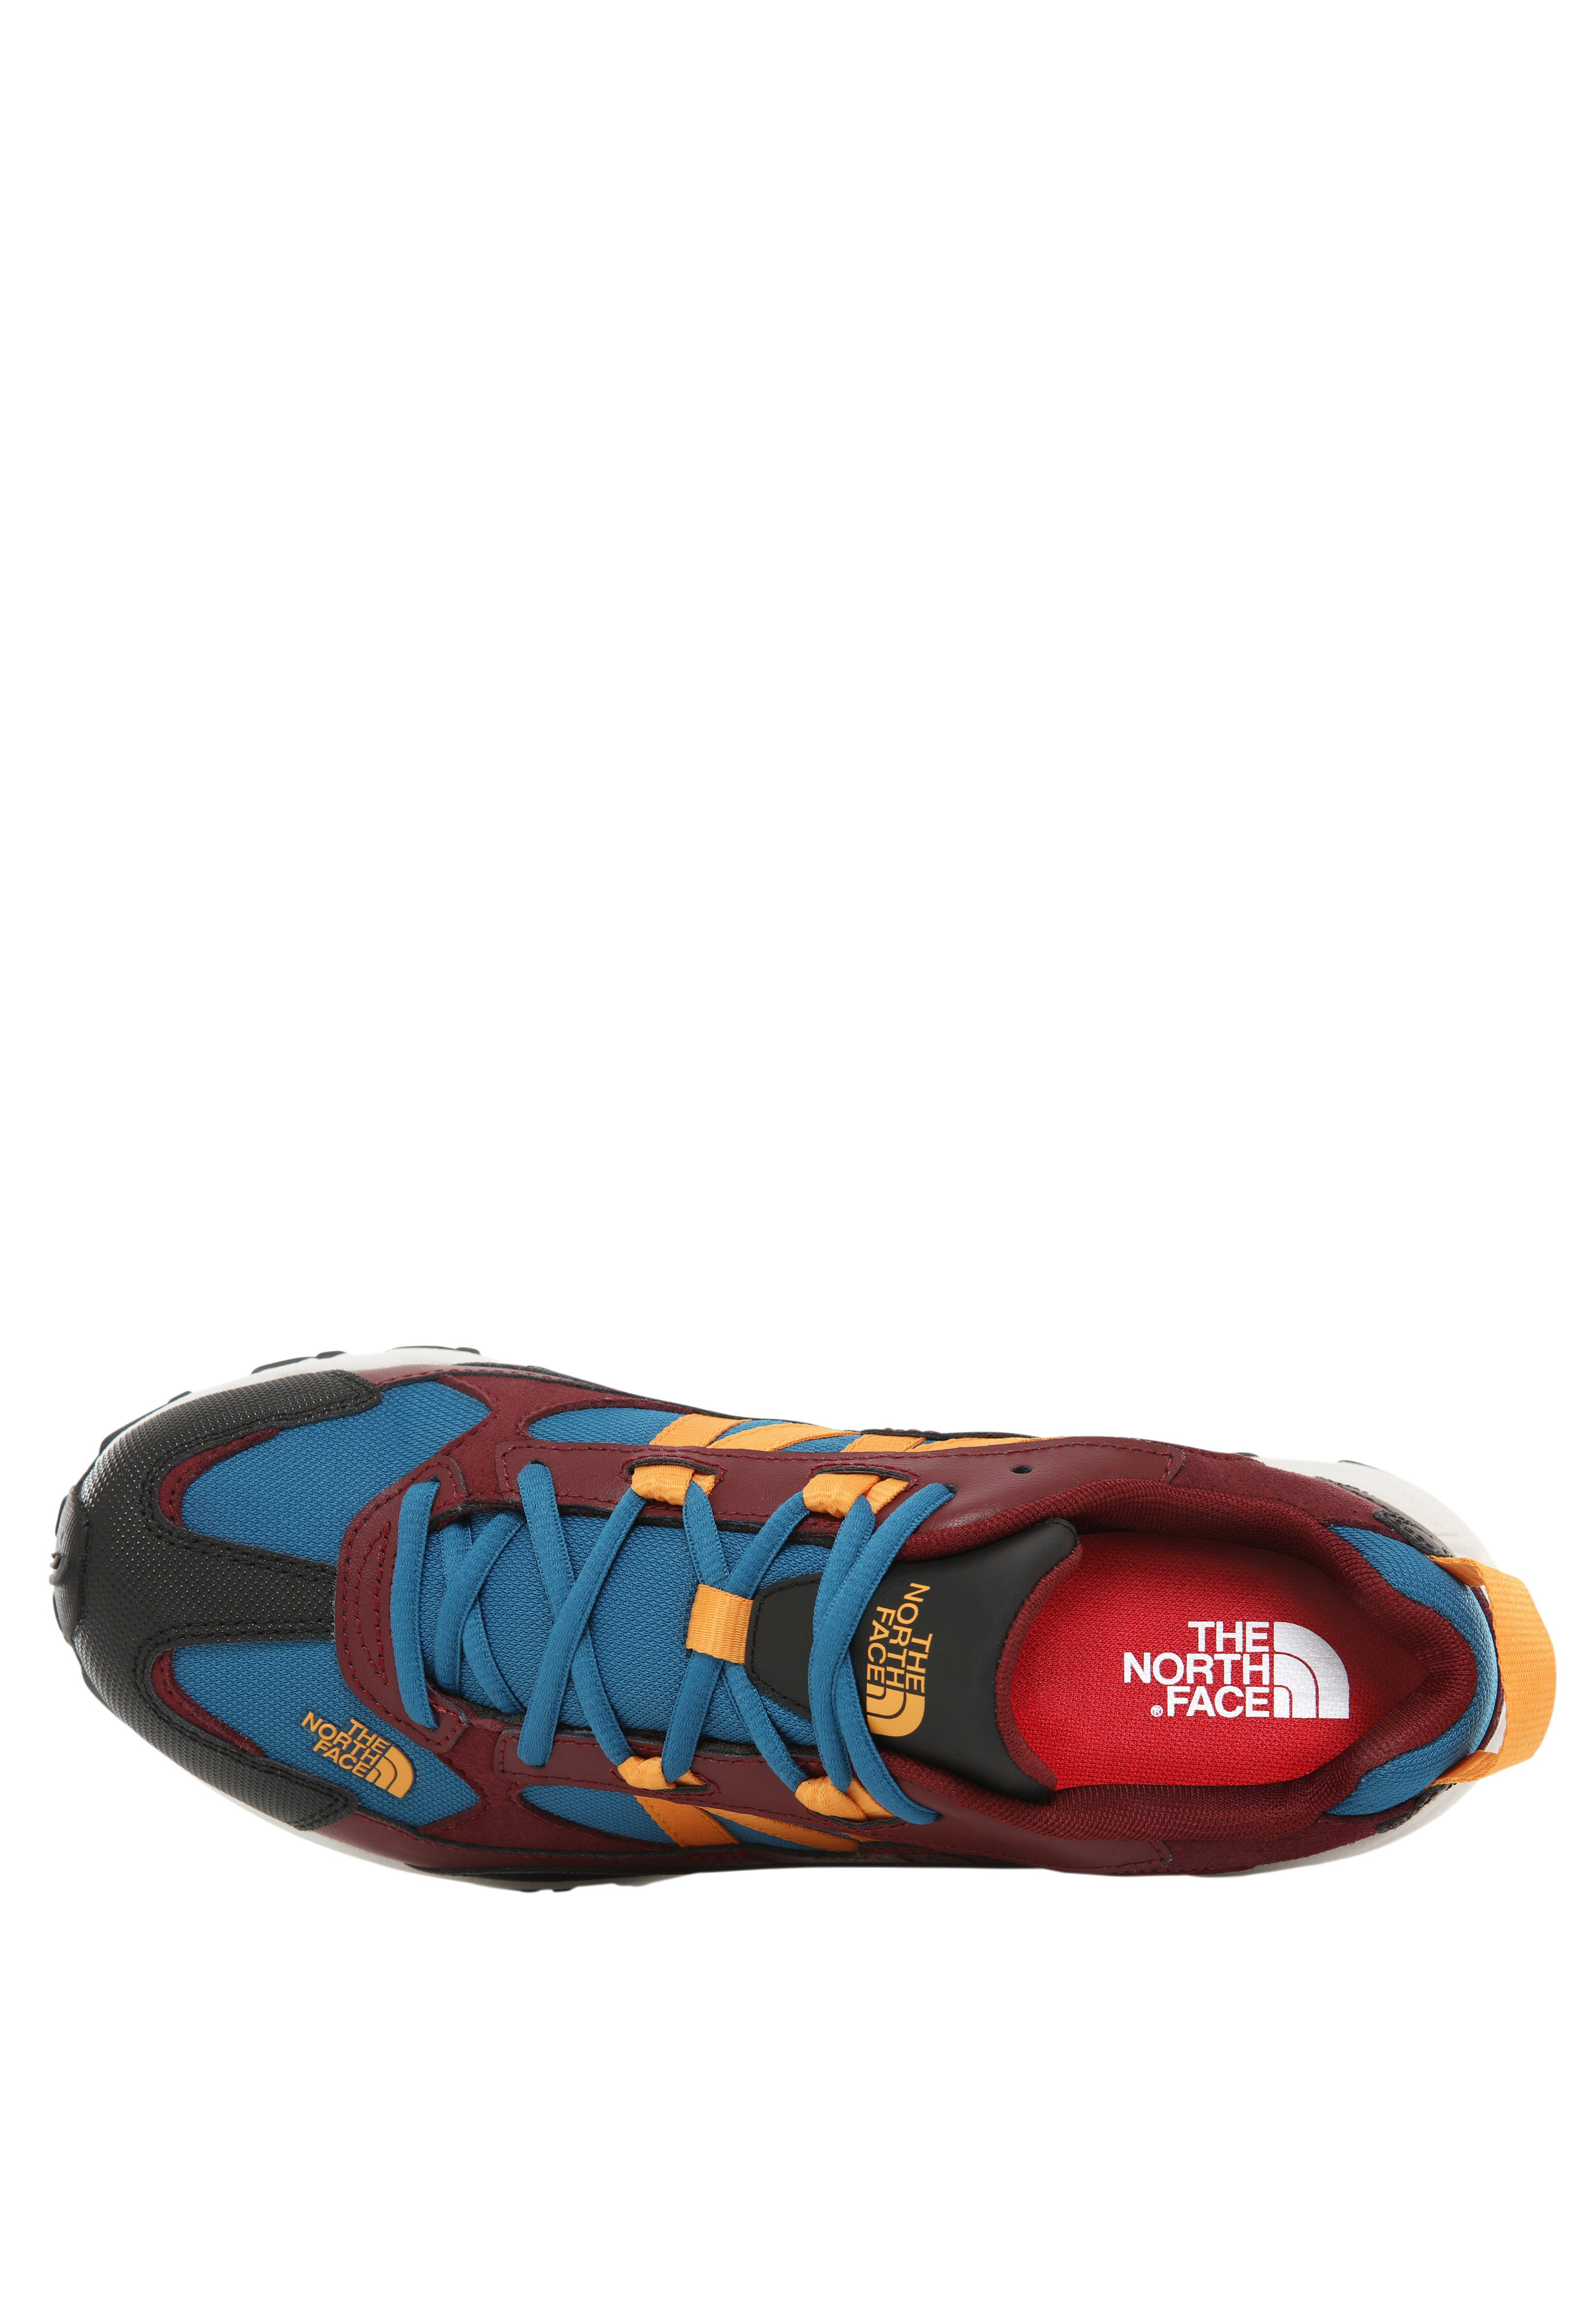 The North Face M ARV TRL KUNA CREST - Sneakers - barolord/tnfblk